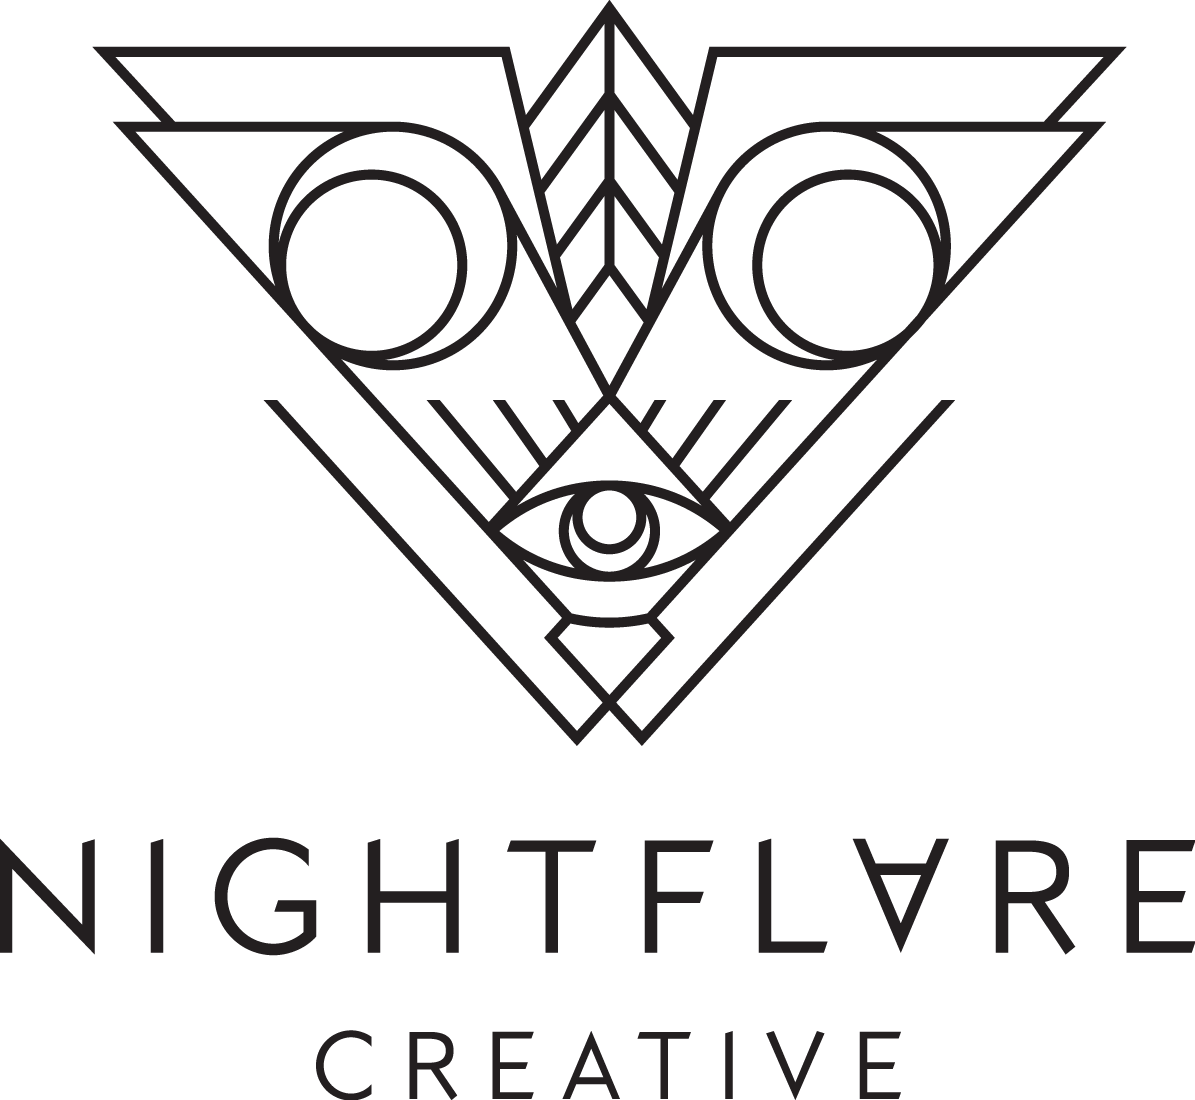 Nightflare Creative